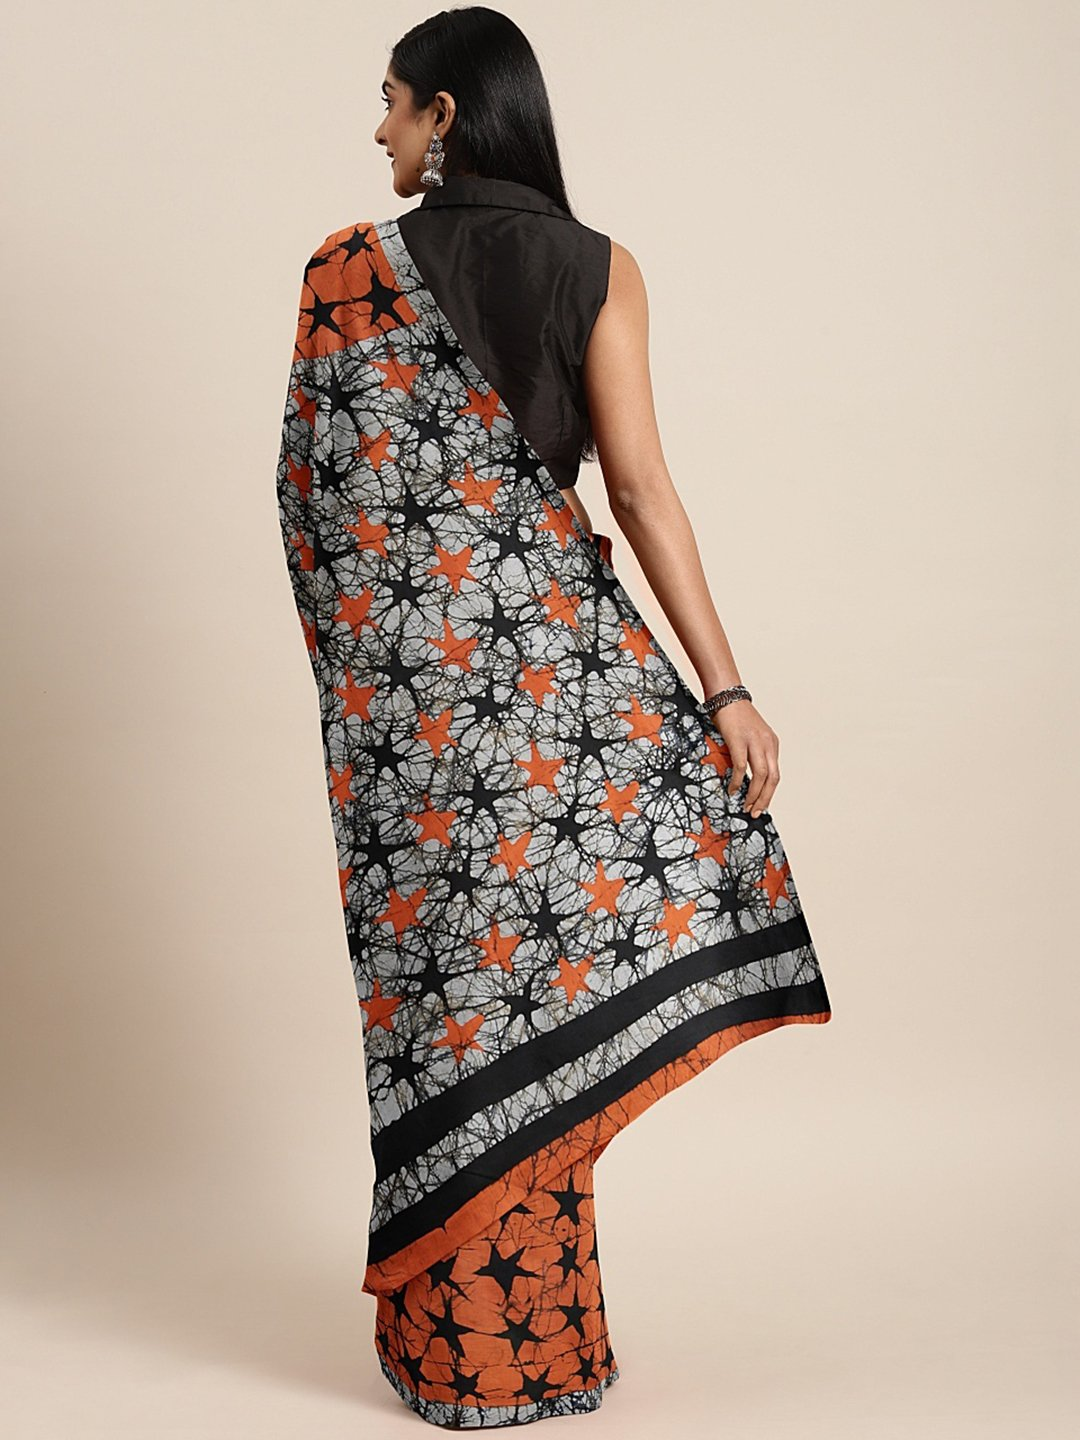 Orange Black Handcrafted Printed Bagru Saree-Saree-Kalakari India-BHKPSA0090-Cotton, Geographical Indication, Hand Blocks, Hand Crafted, Heritage Prints, Sarees, Shibori, Sustainable Fabrics-[Linen,Ethnic,wear,Fashionista,Handloom,Handicraft,Indigo,blockprint,block,print,Cotton,Chanderi,Blue, latest,classy,party,bollywood,trendy,summer,style,traditional,formal,elegant,unique,style,hand,block,print, dabu,booti,gift,present,glamorous,affordable,collectible,Sari,Saree,printed, holi, Diwali, birthda